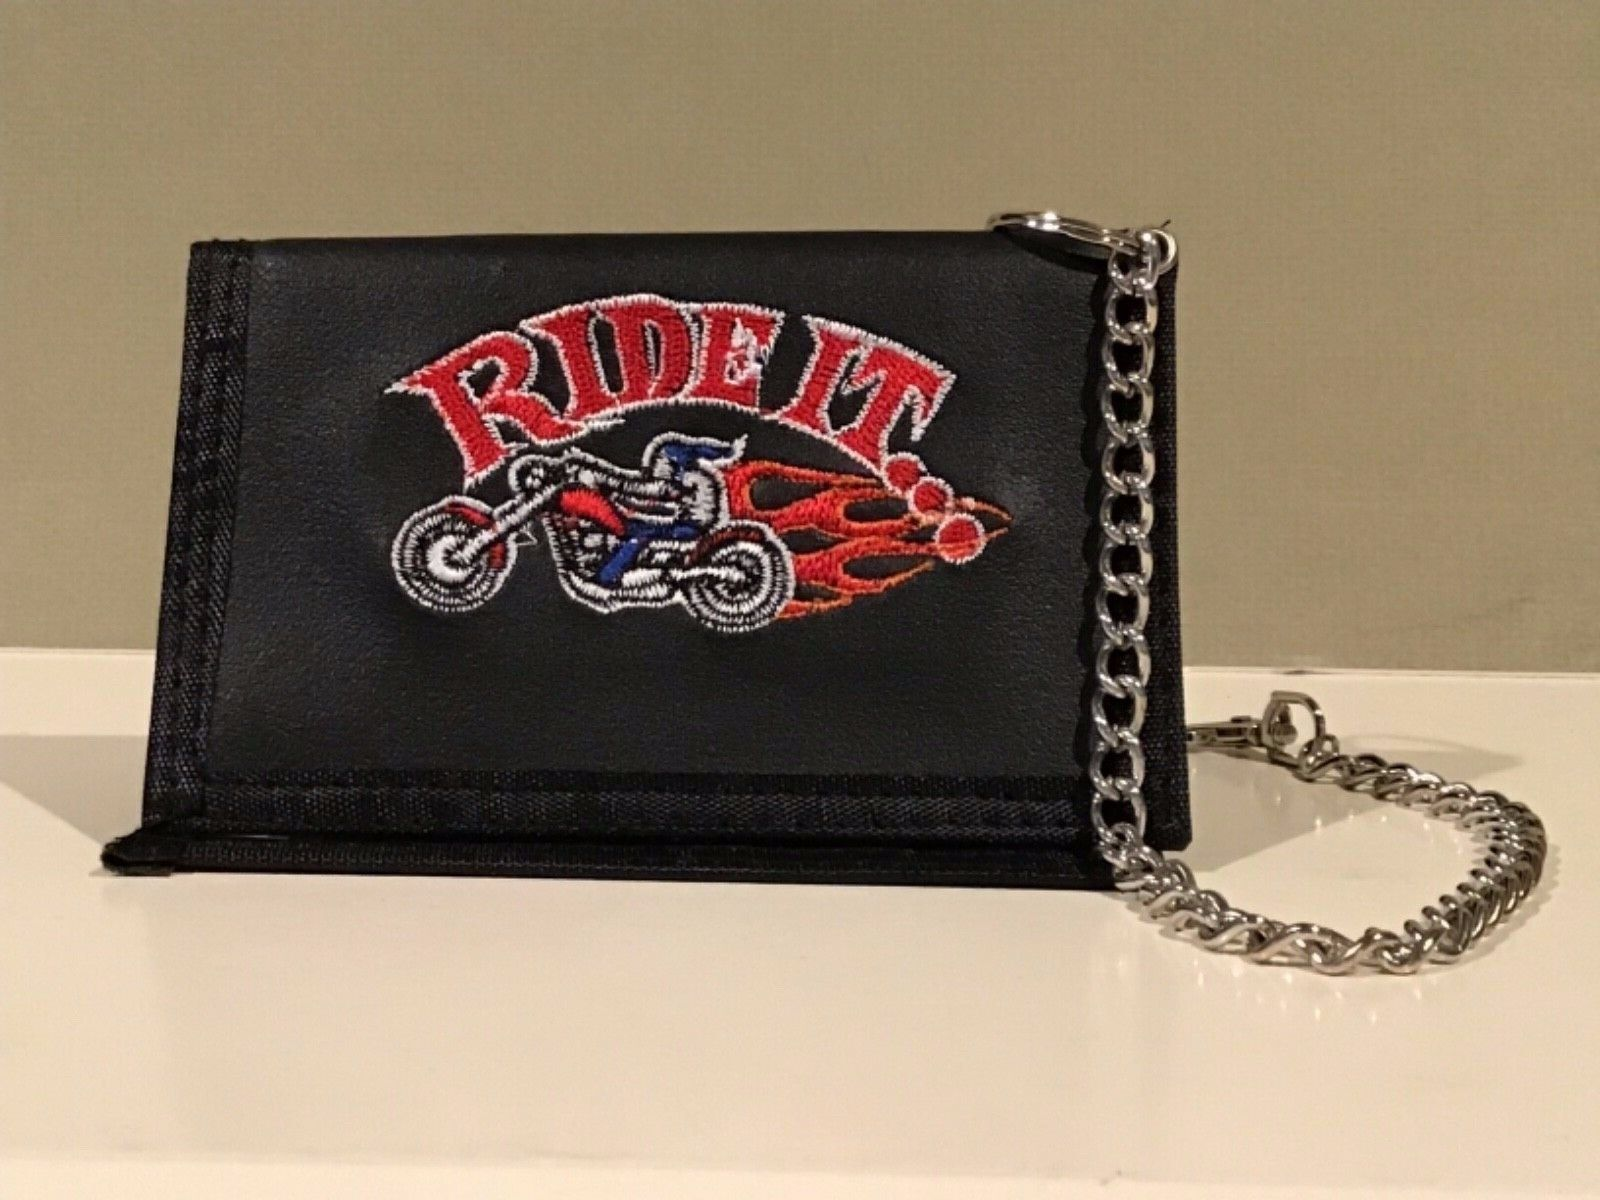 Men's Trifold Wallet with Embroidered Motorcycle Ride It